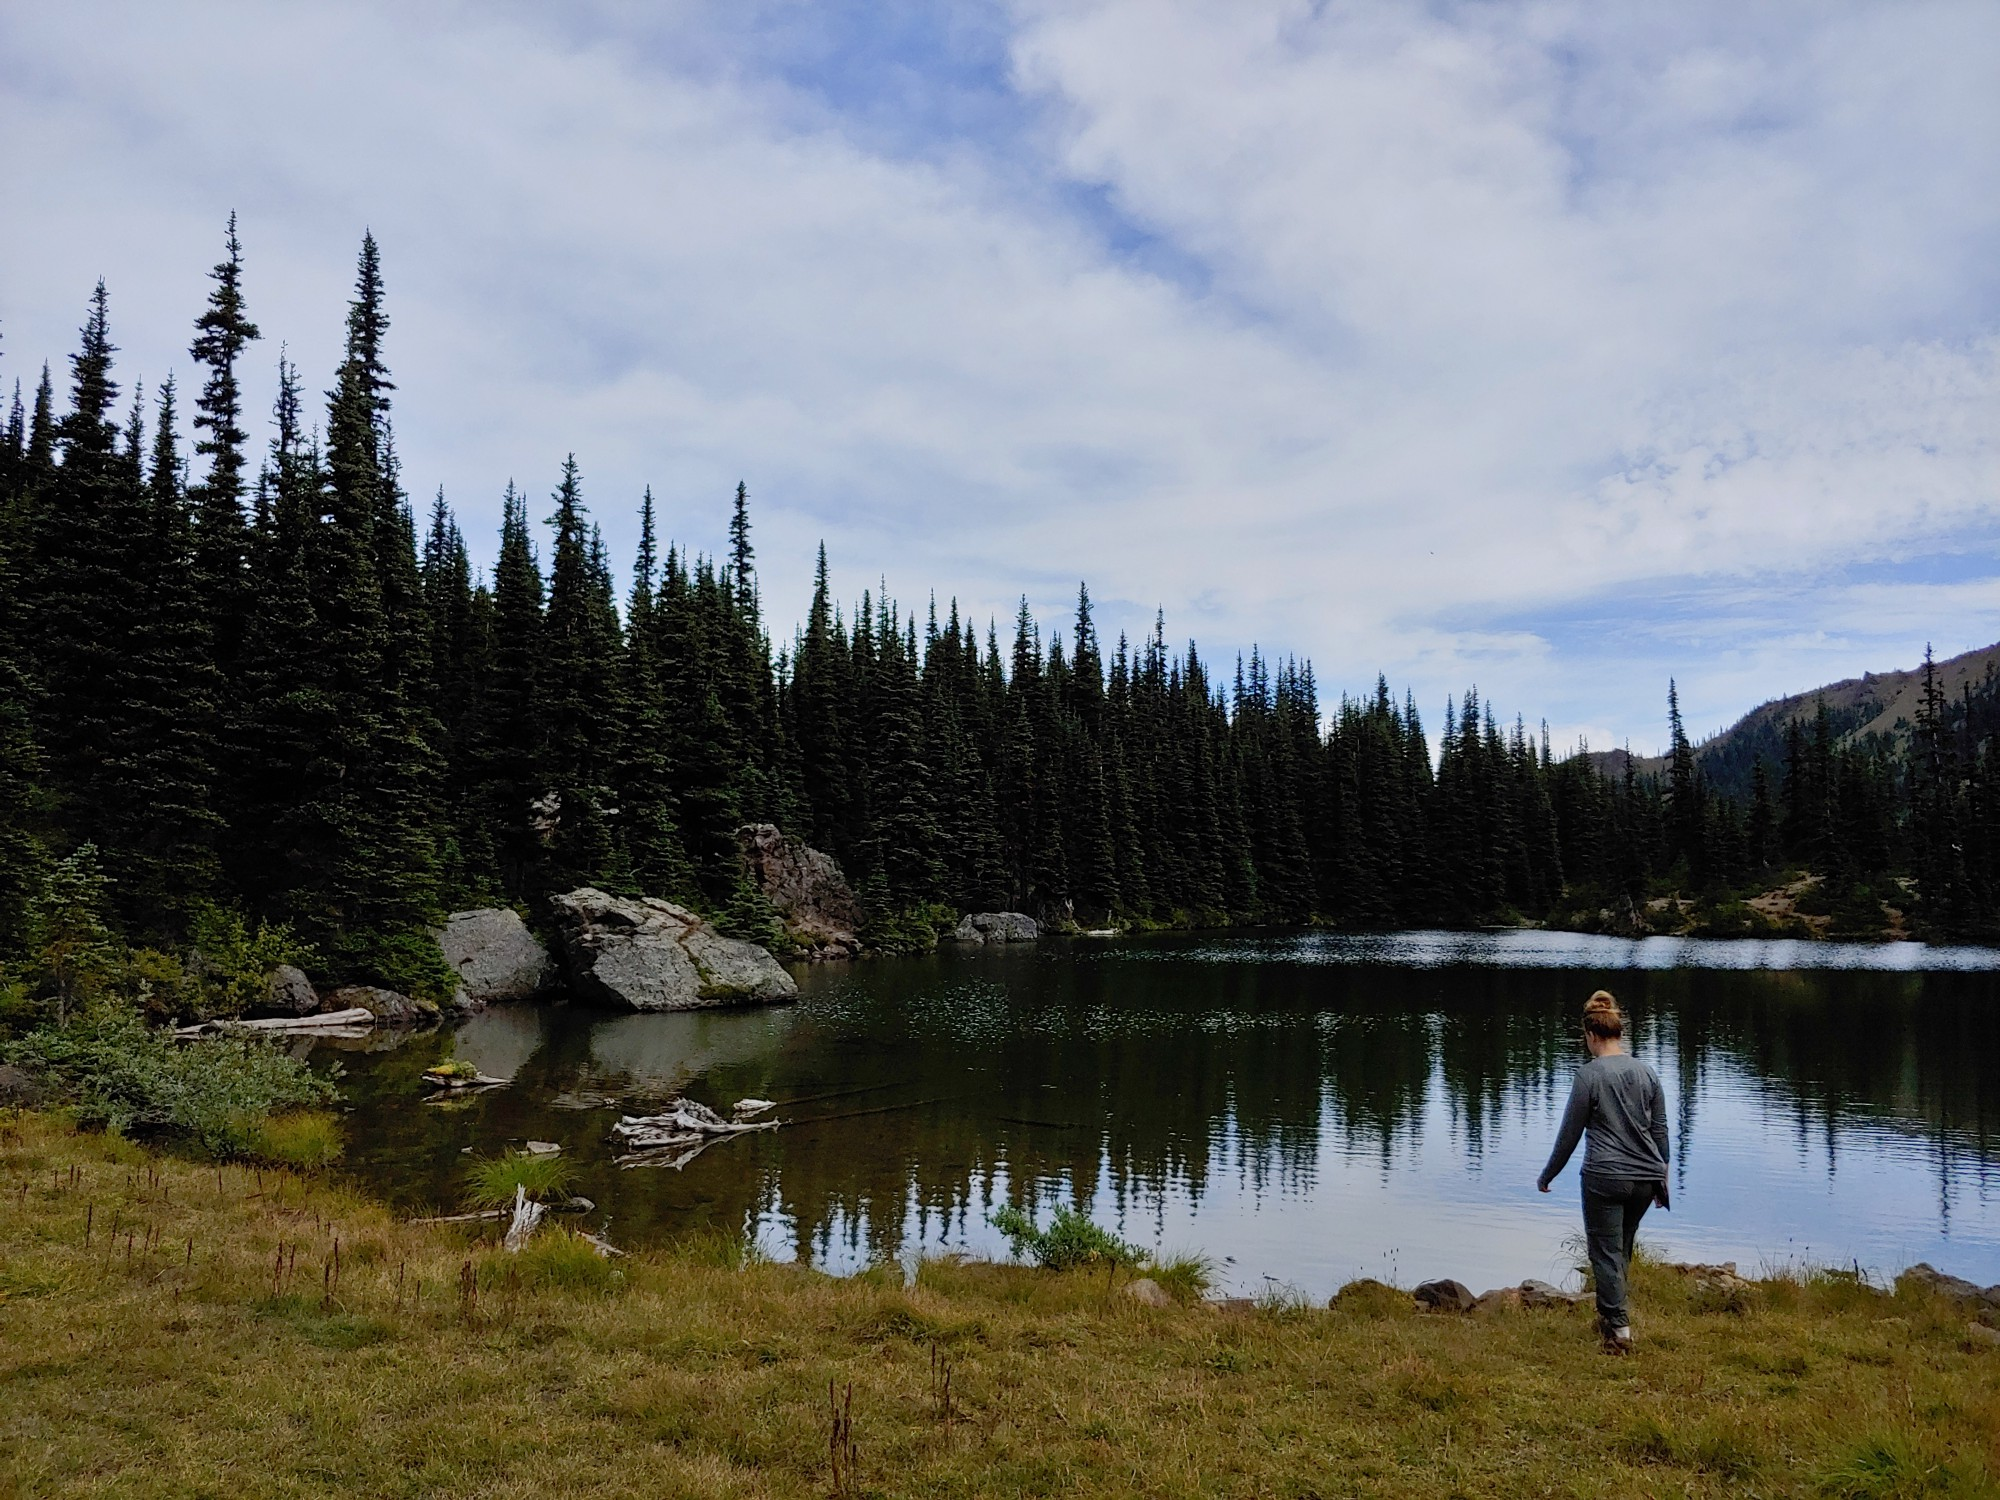 A hiker approaches the shore of Silver Lake in Olympic National Forest.